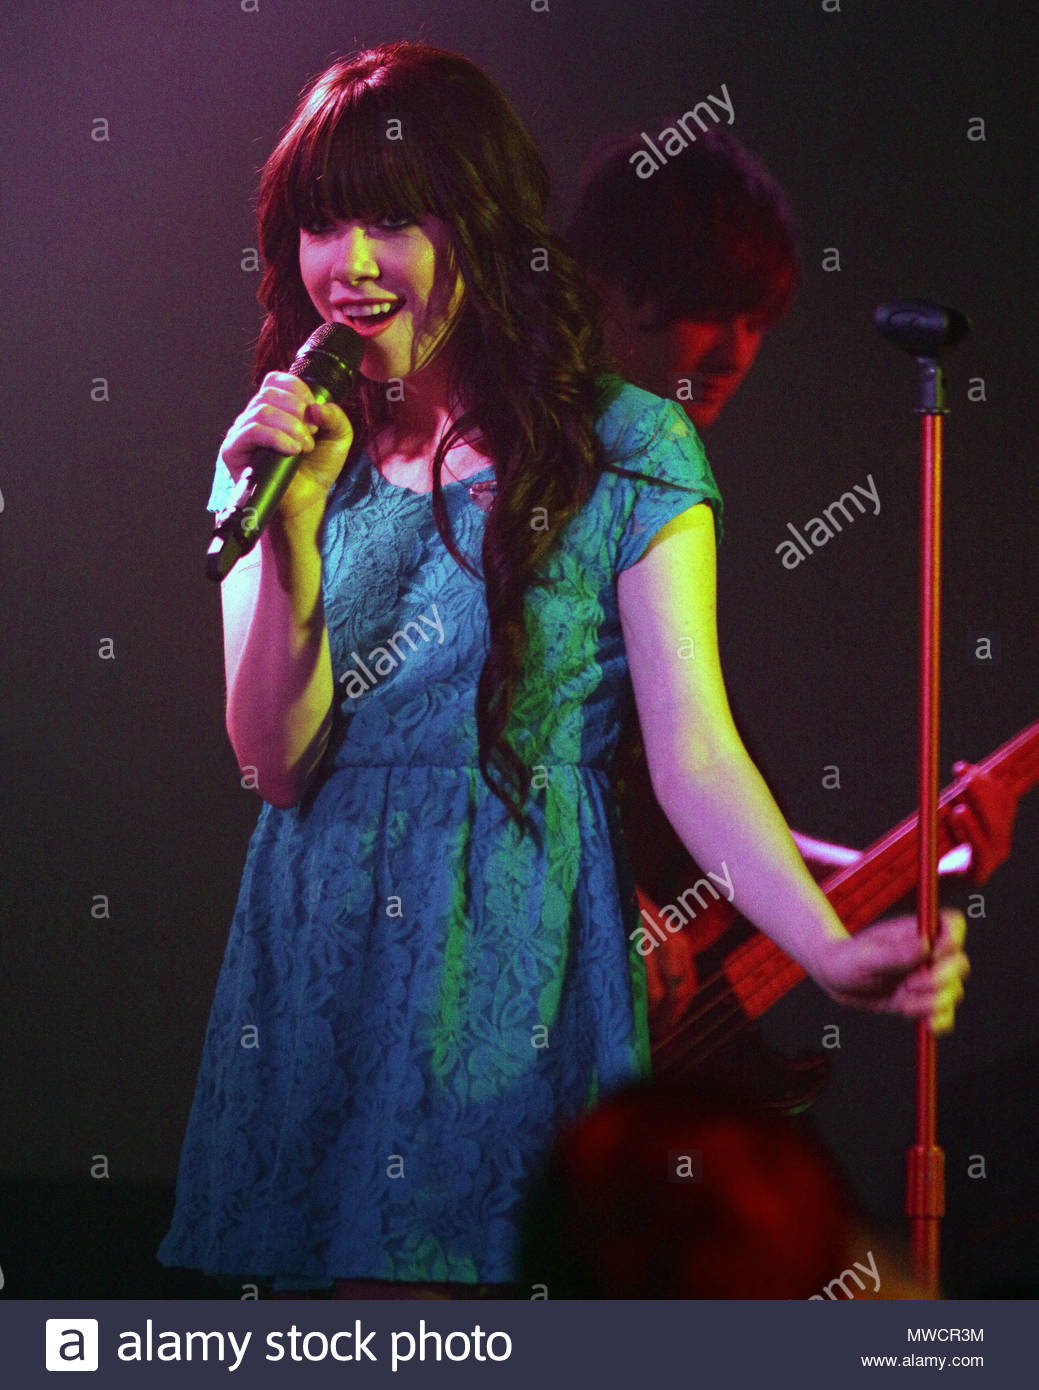 Carly rae jepsen fakes can